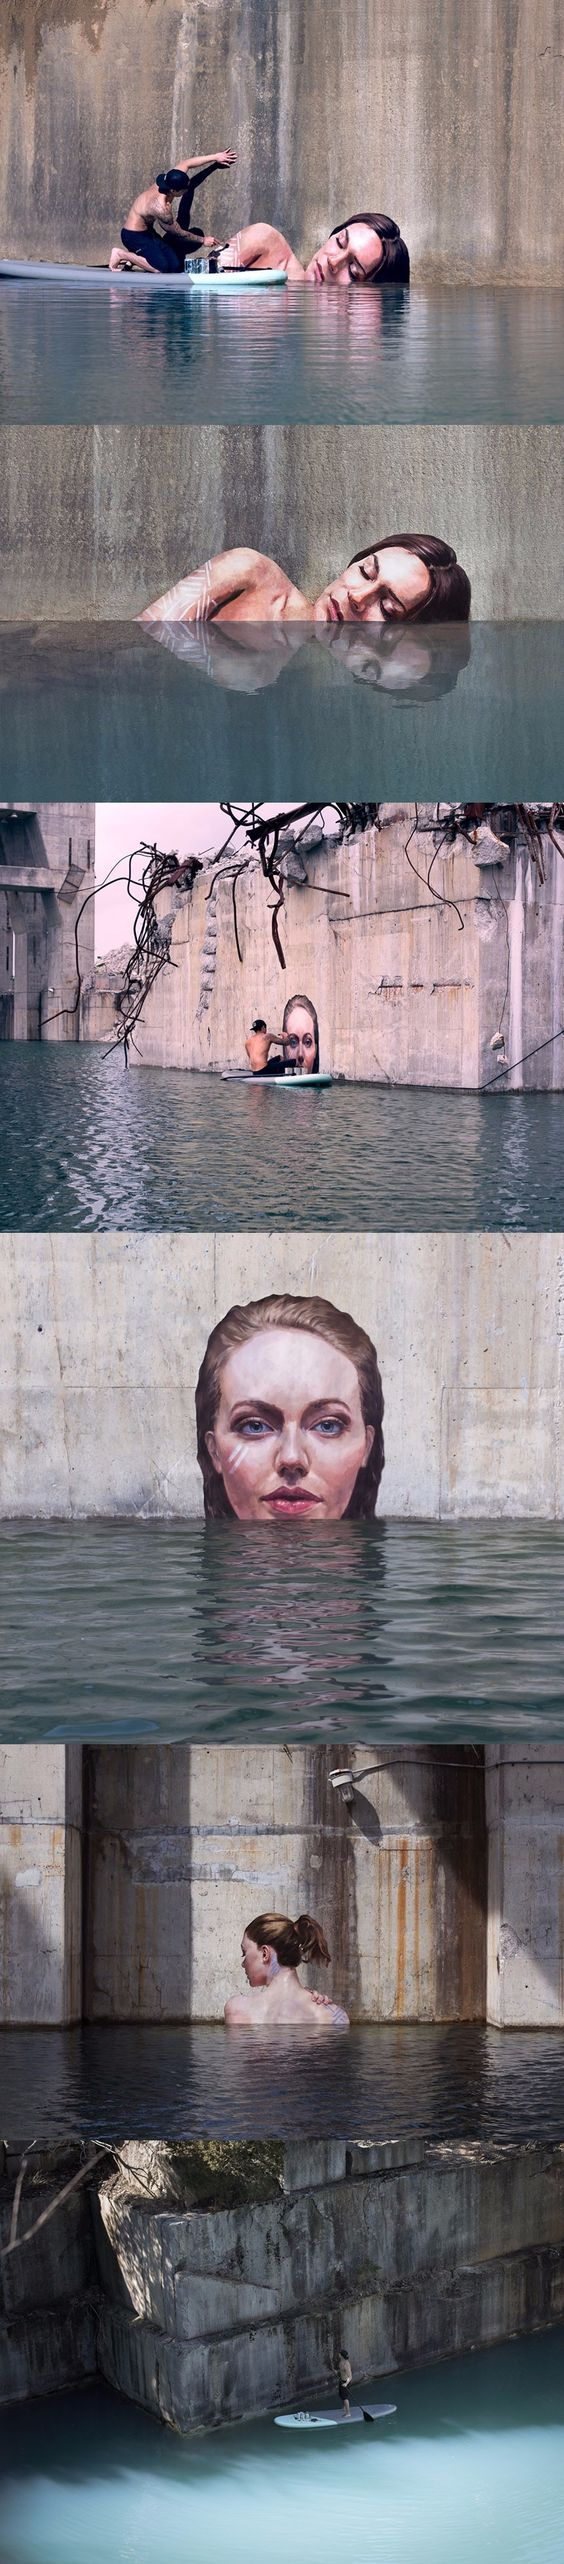 "If you've seen these great ""street"" art pieces and were wondering how the artist did them, here you go :)"